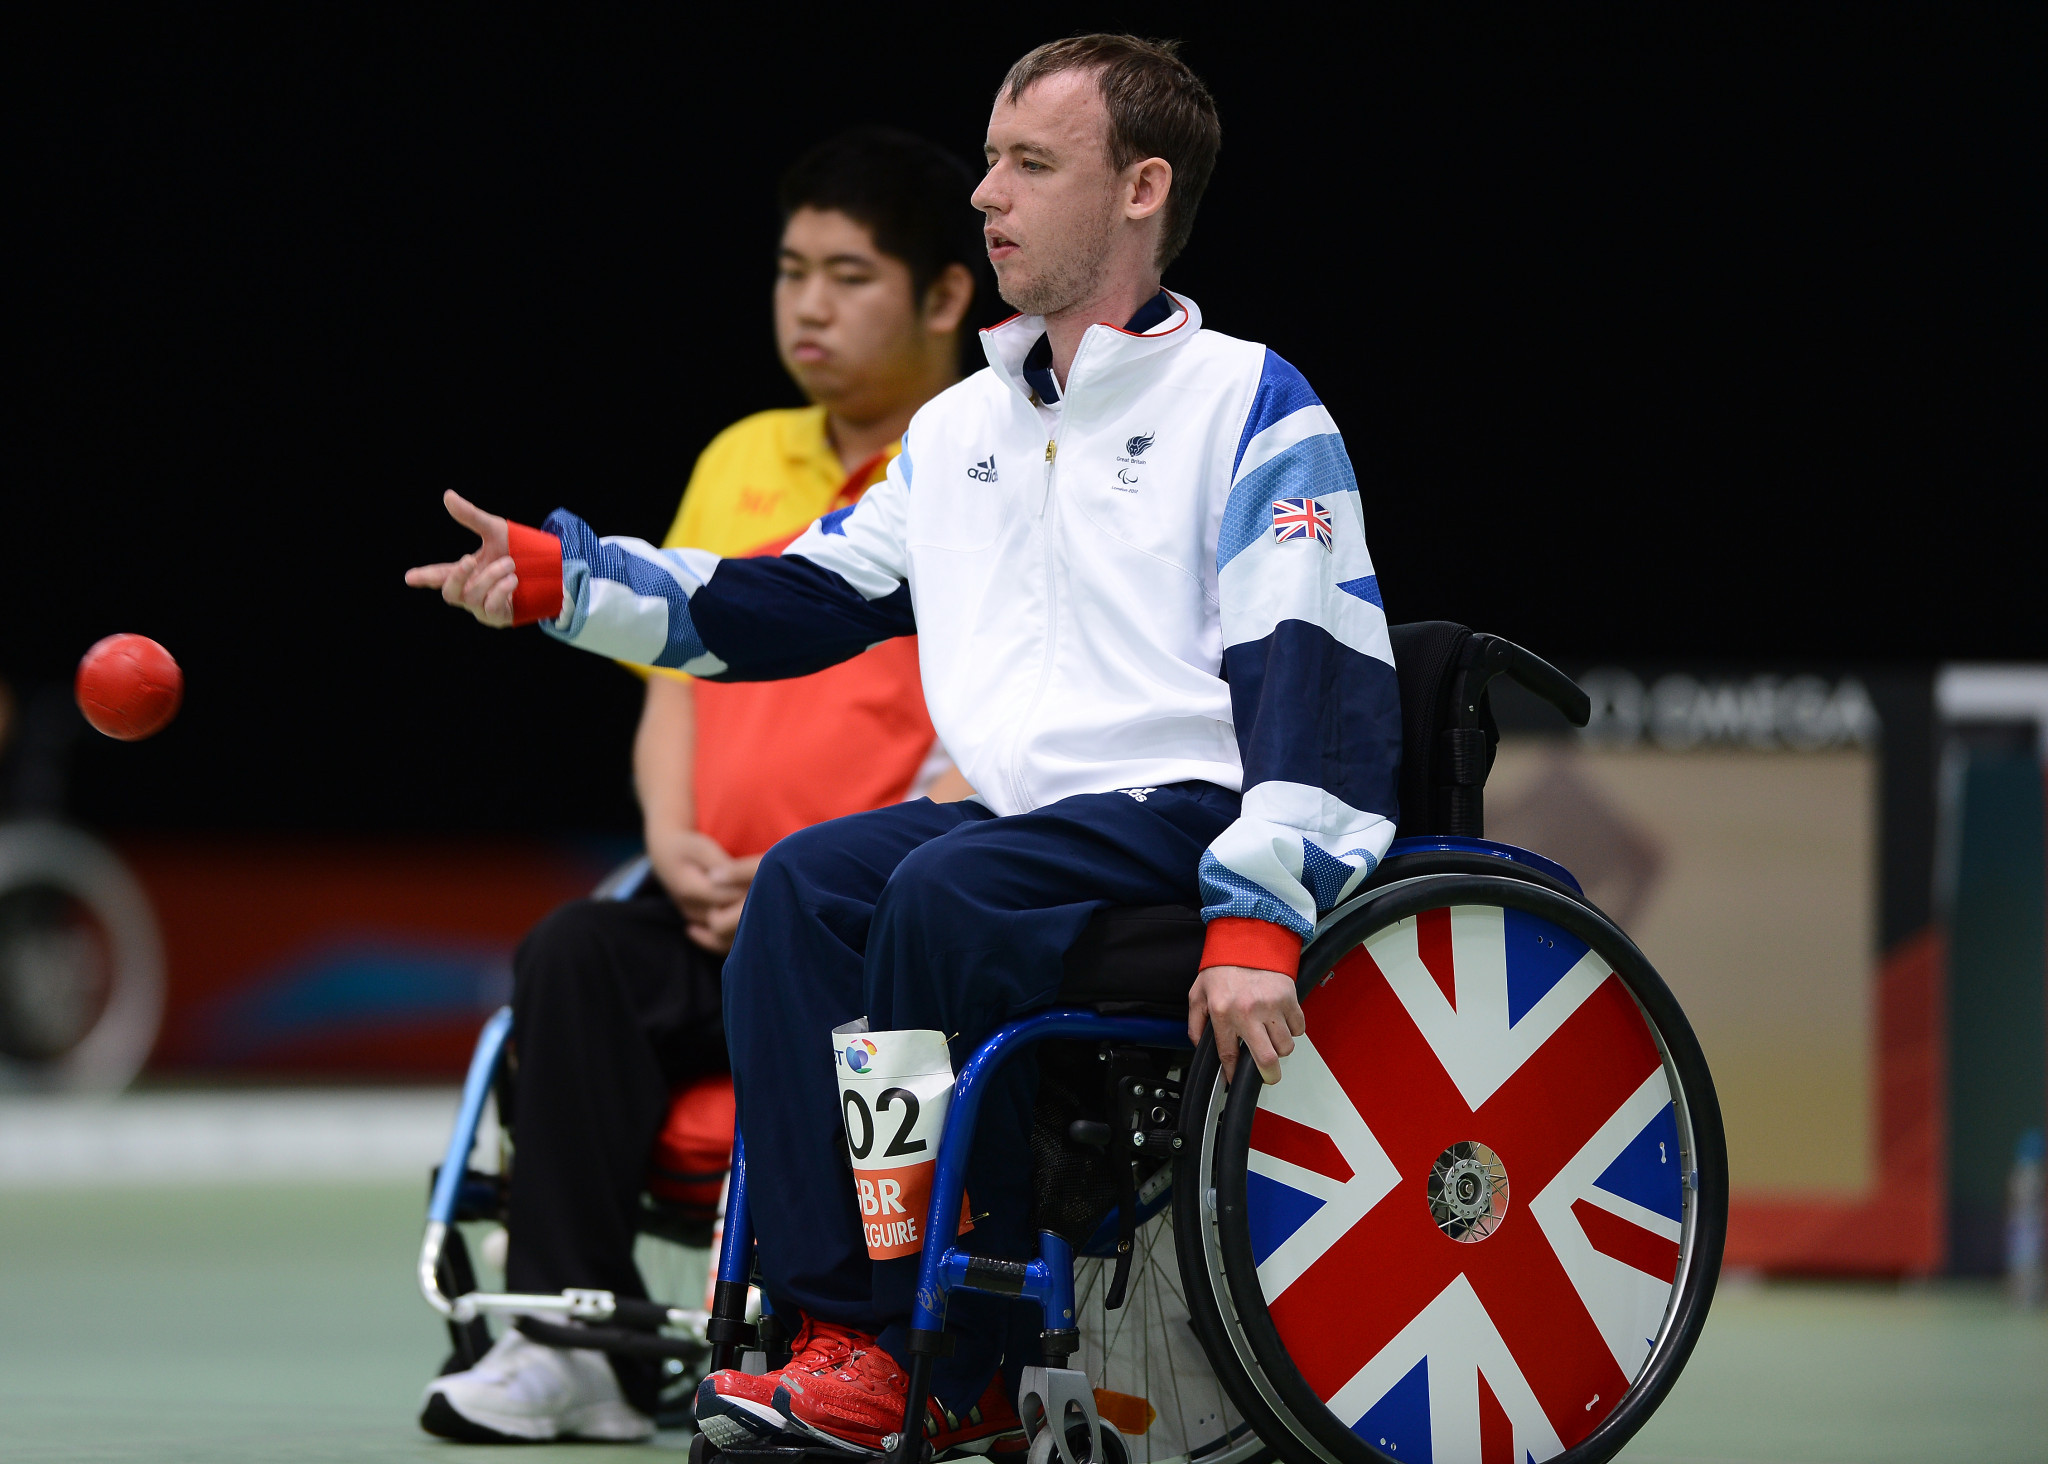 Five shortlisted to become Boccia International Sports Federation athlete representative